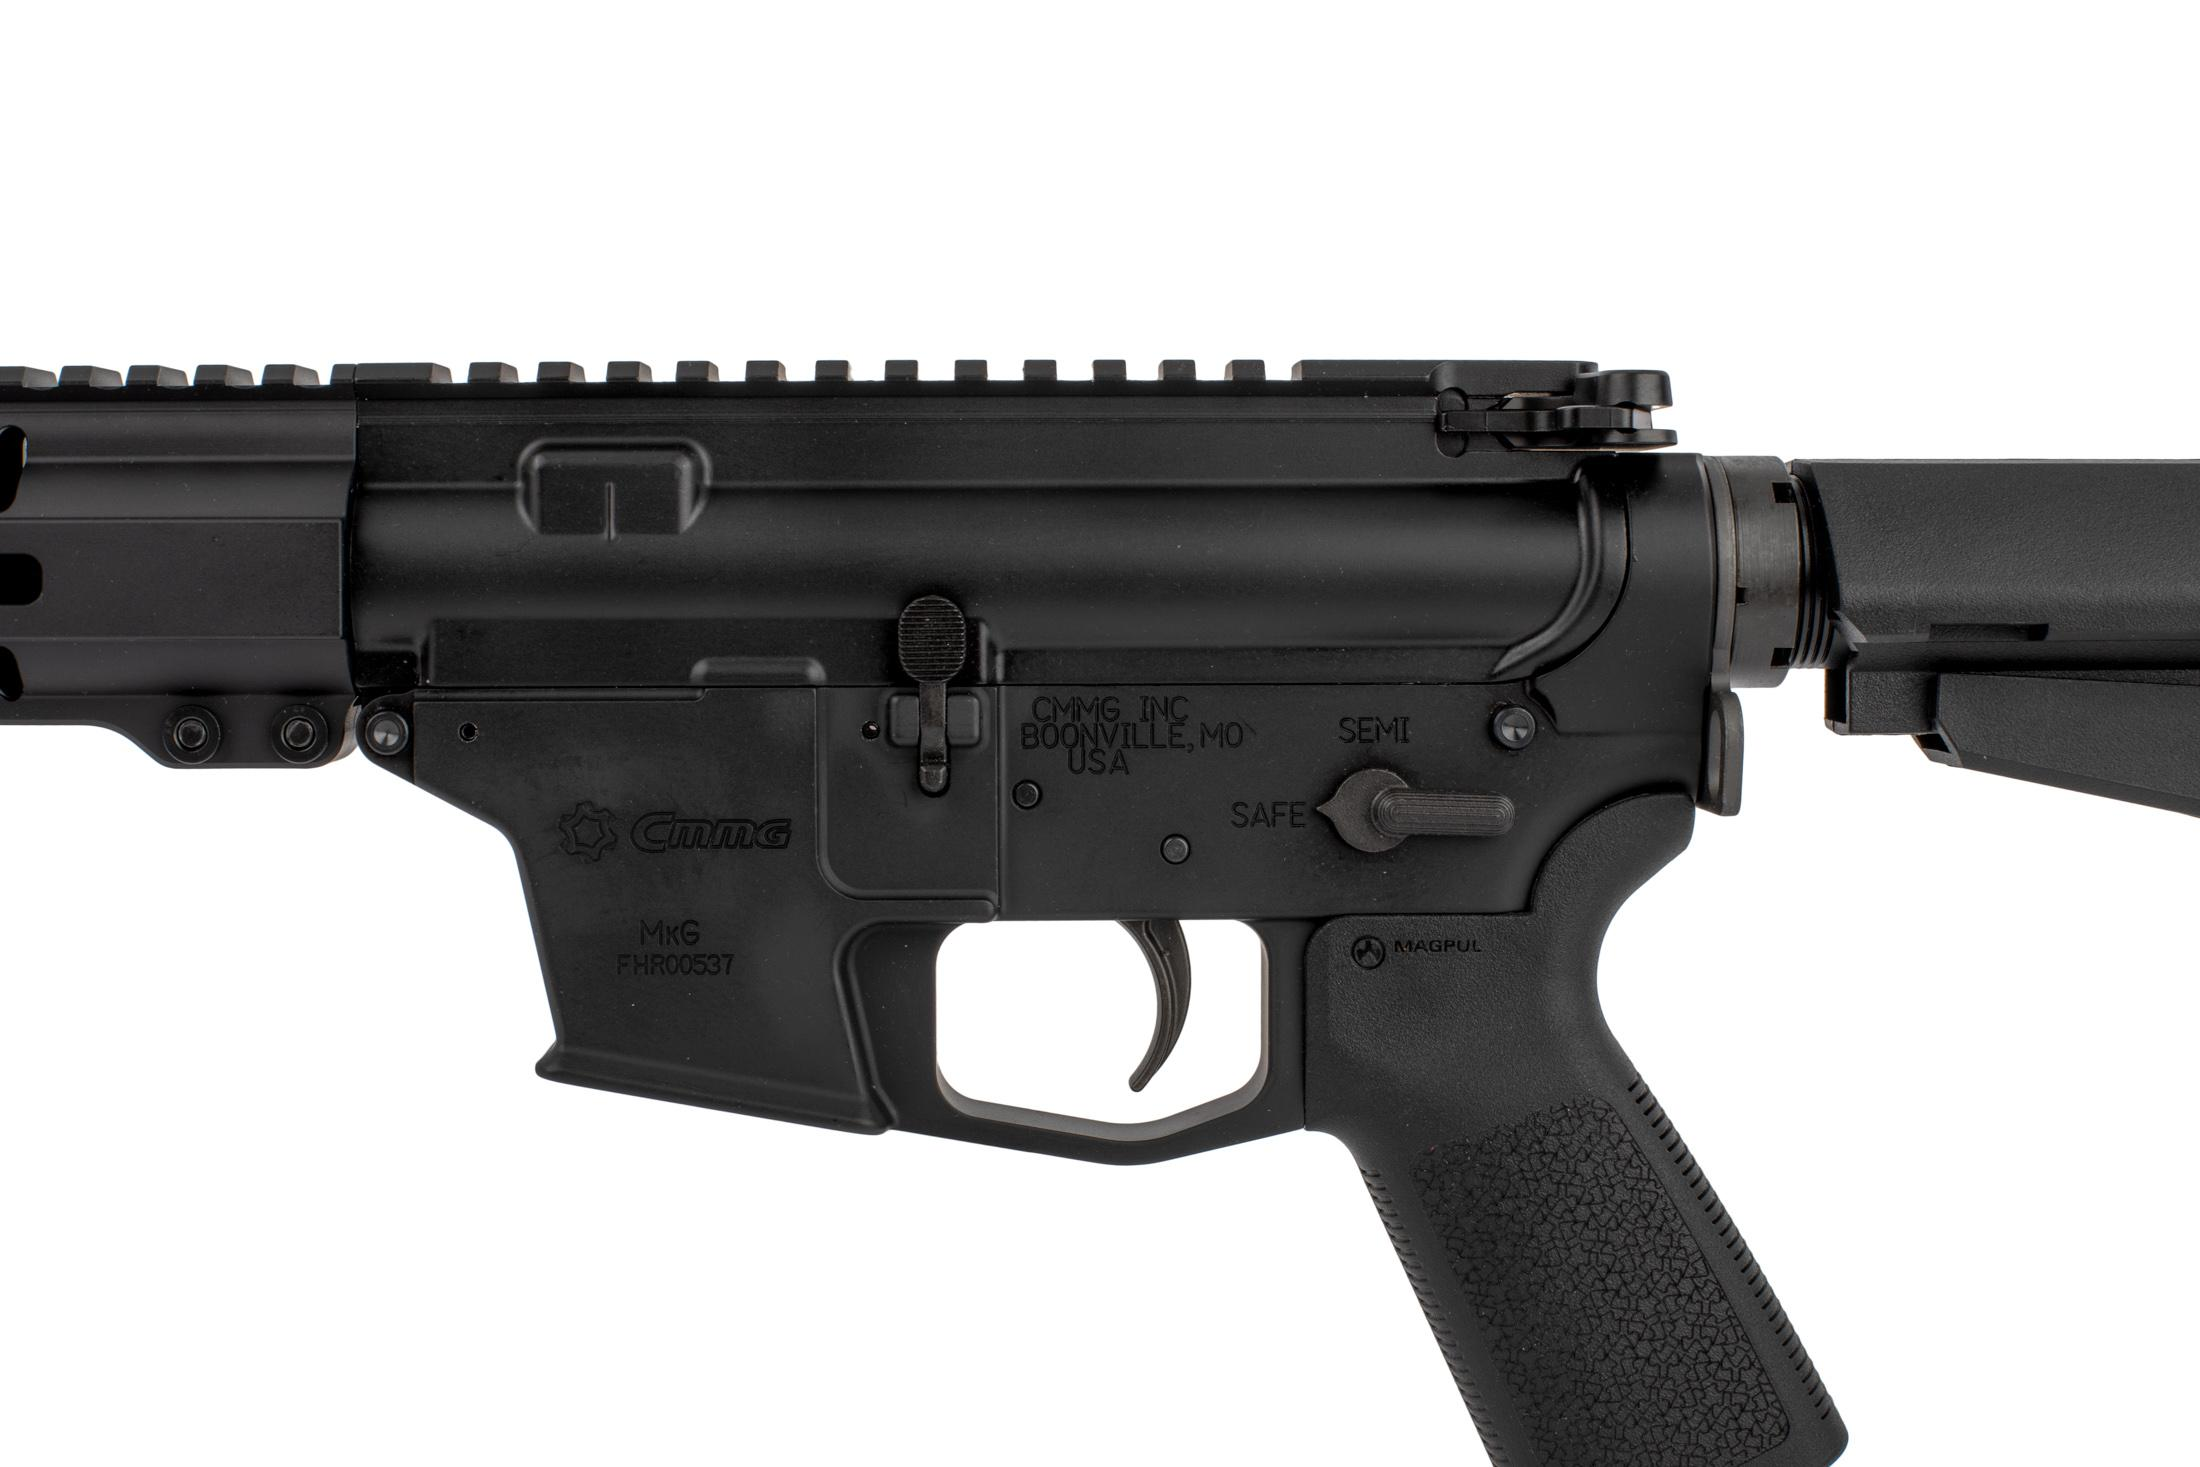 The CMMG Banshee MkG AR15 pistol is compatible with AR-15 parts like the trigger, safety, and bolt release